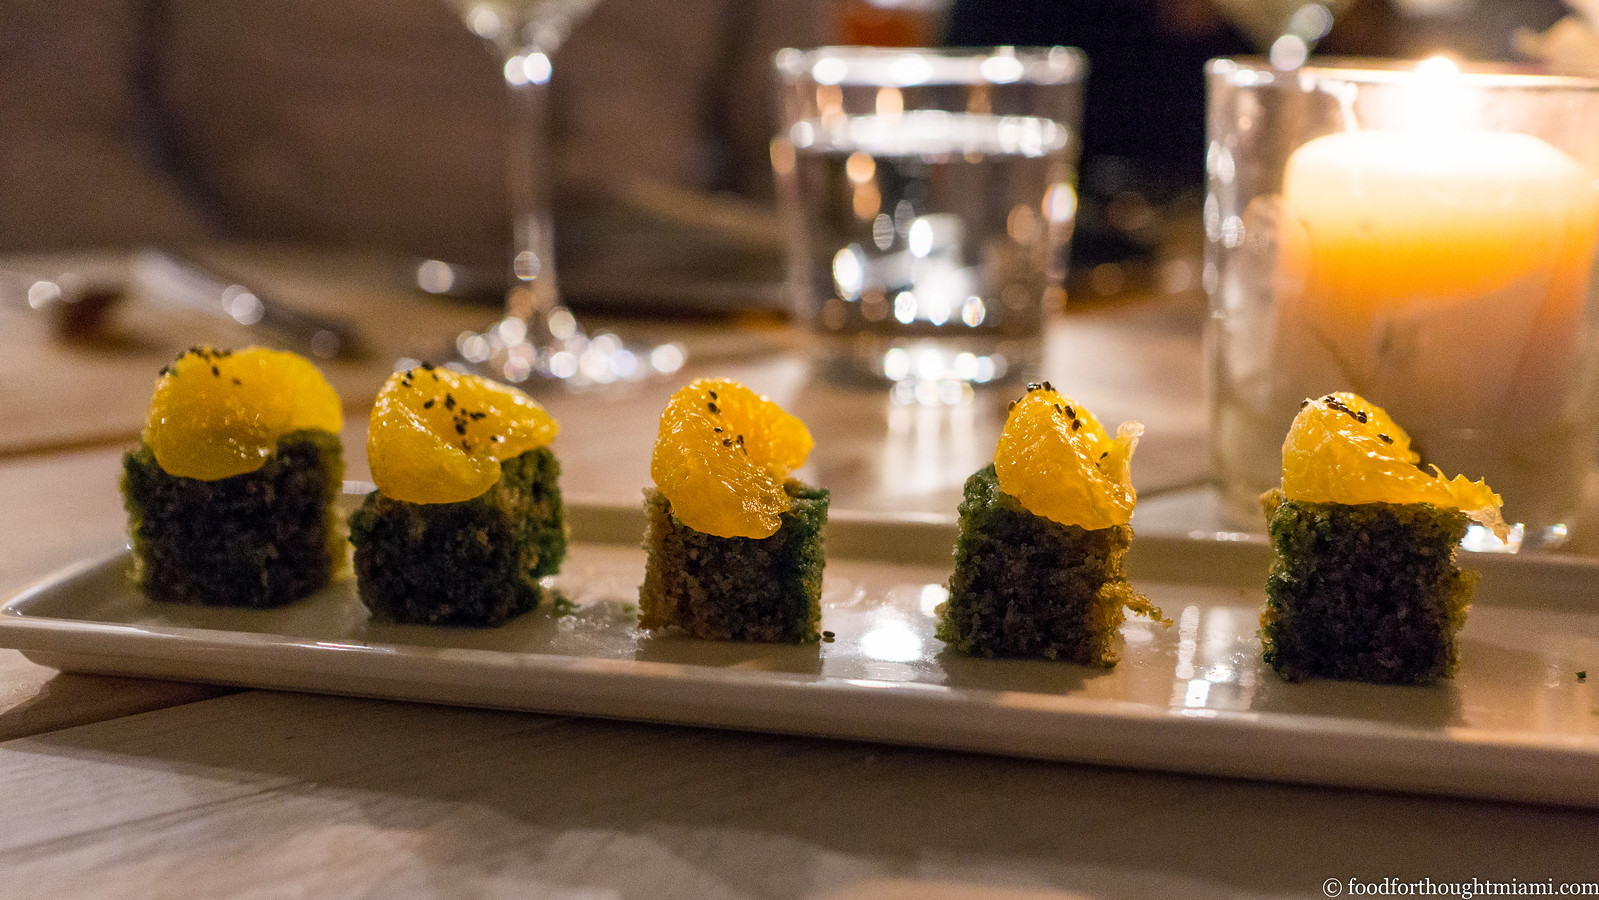 food for thought | a miami food blog: Cobaya DK with David Lanster ...